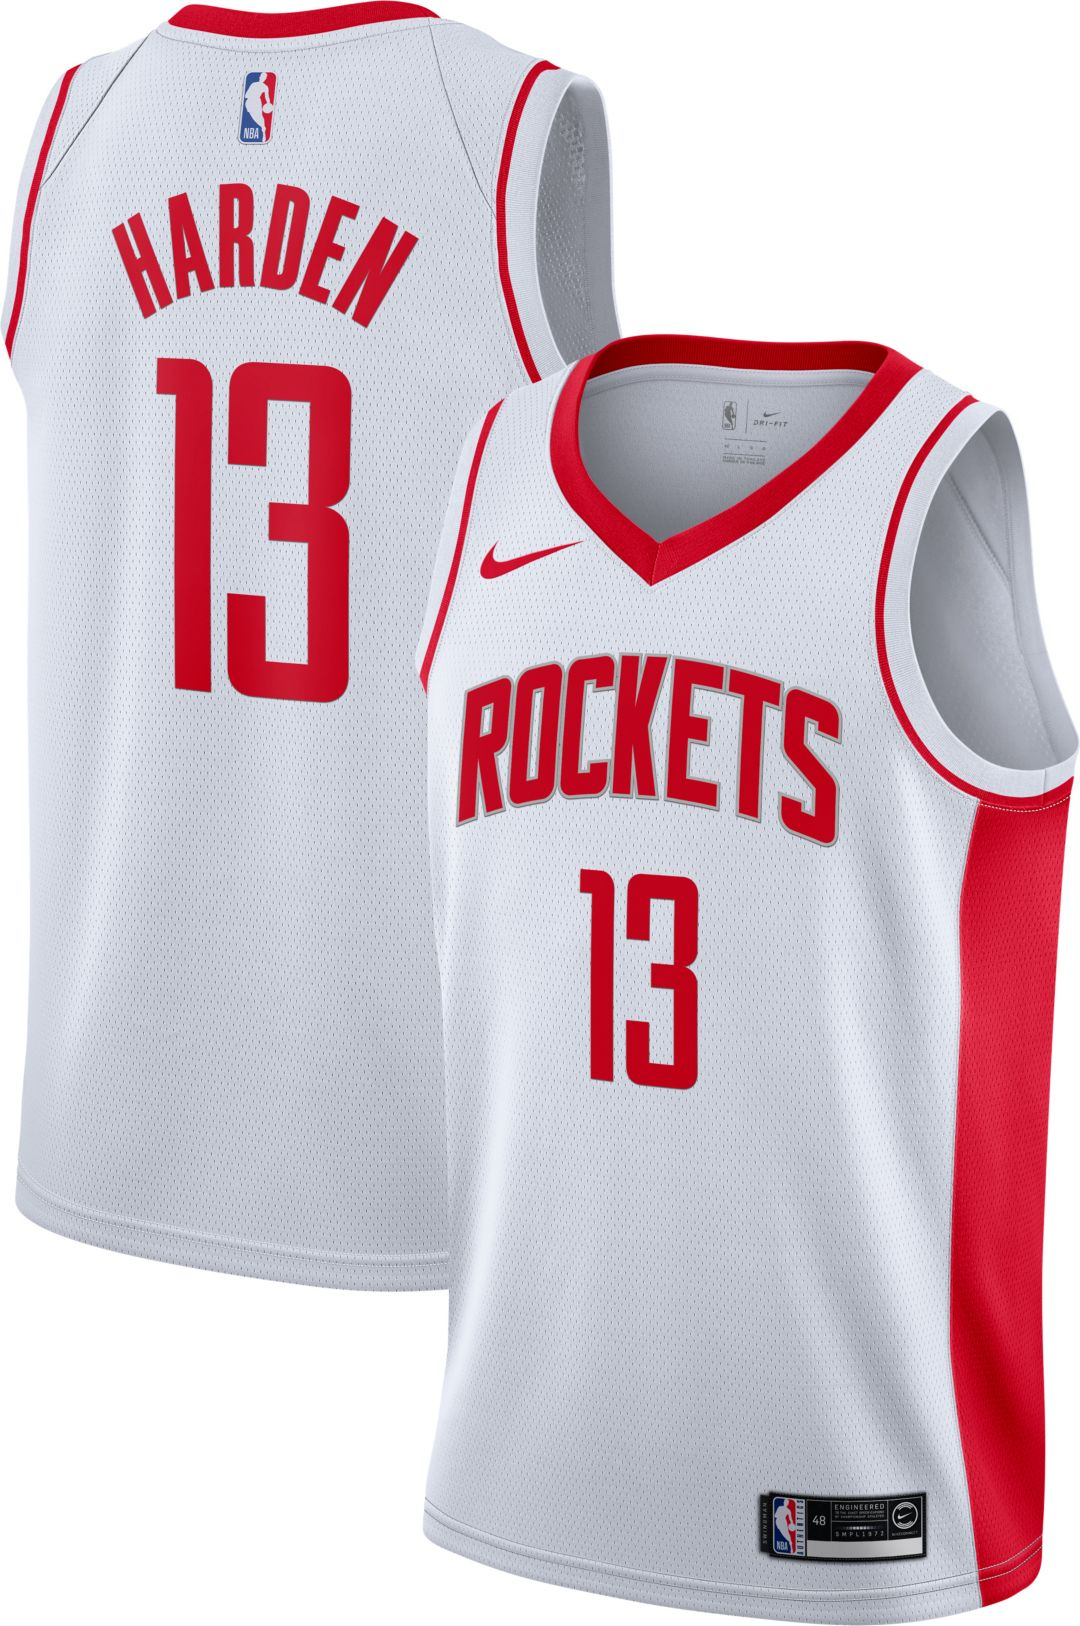 huge selection of 2259c fe32c Nike Men's Houston Rockets James Harden #13 White Dri-FIT Swingman Jersey